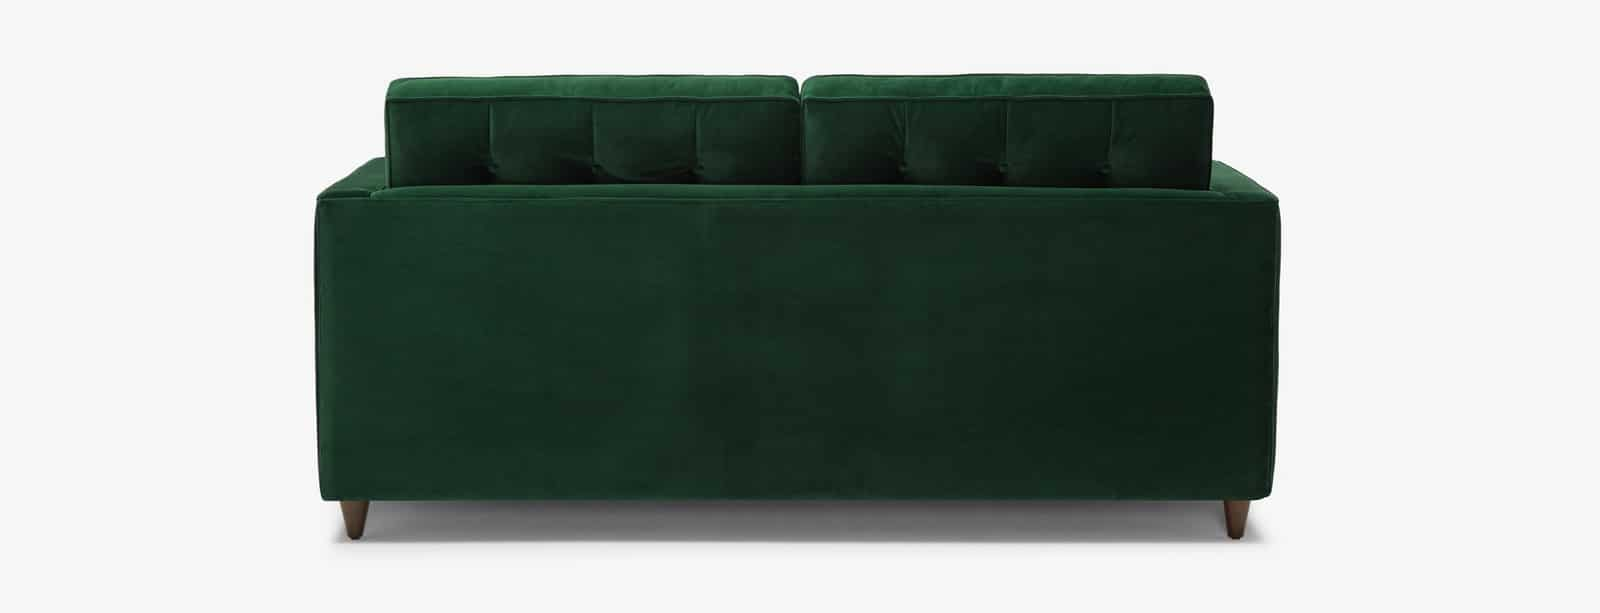 Braxton-Sleeper-Sofa-Royale-Evergreen-T1-122